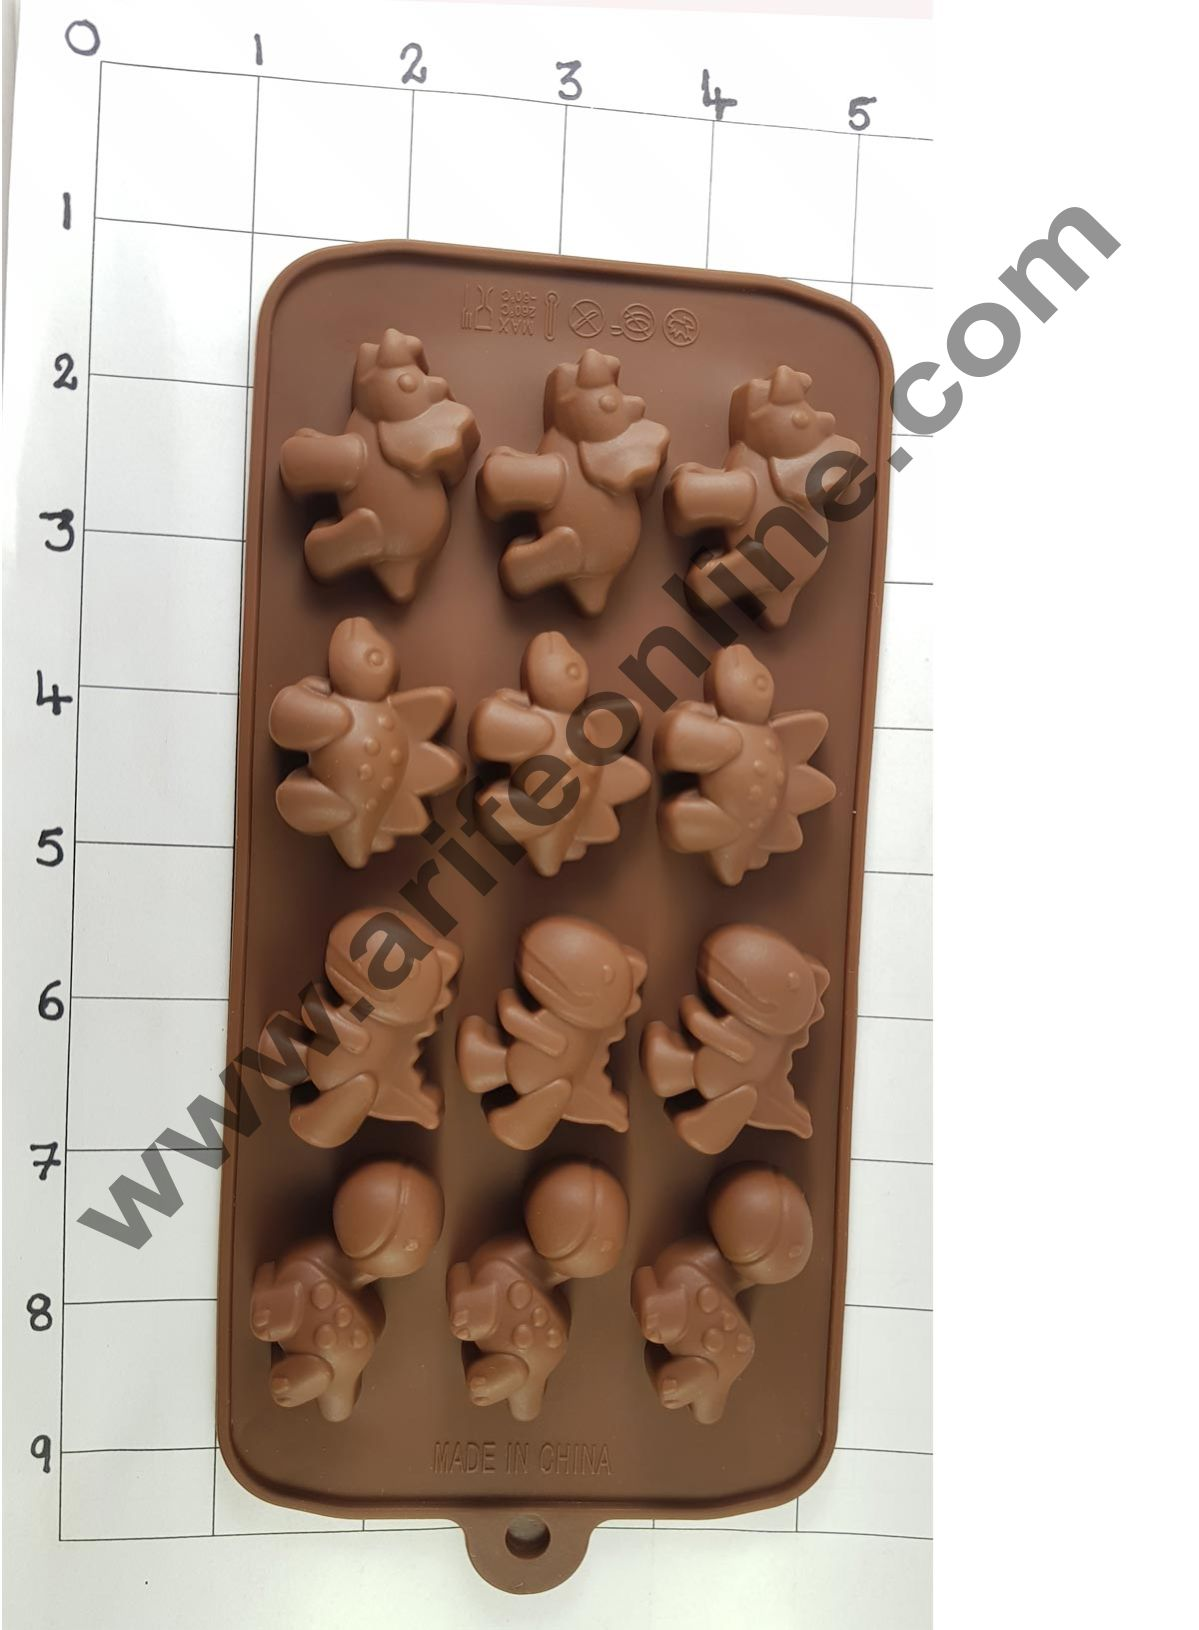 Cake Decor Silicon 15 Cavity Dinasour Design Brown Chocolate Mould, Ice Mould, Chocolate Decorating Mould